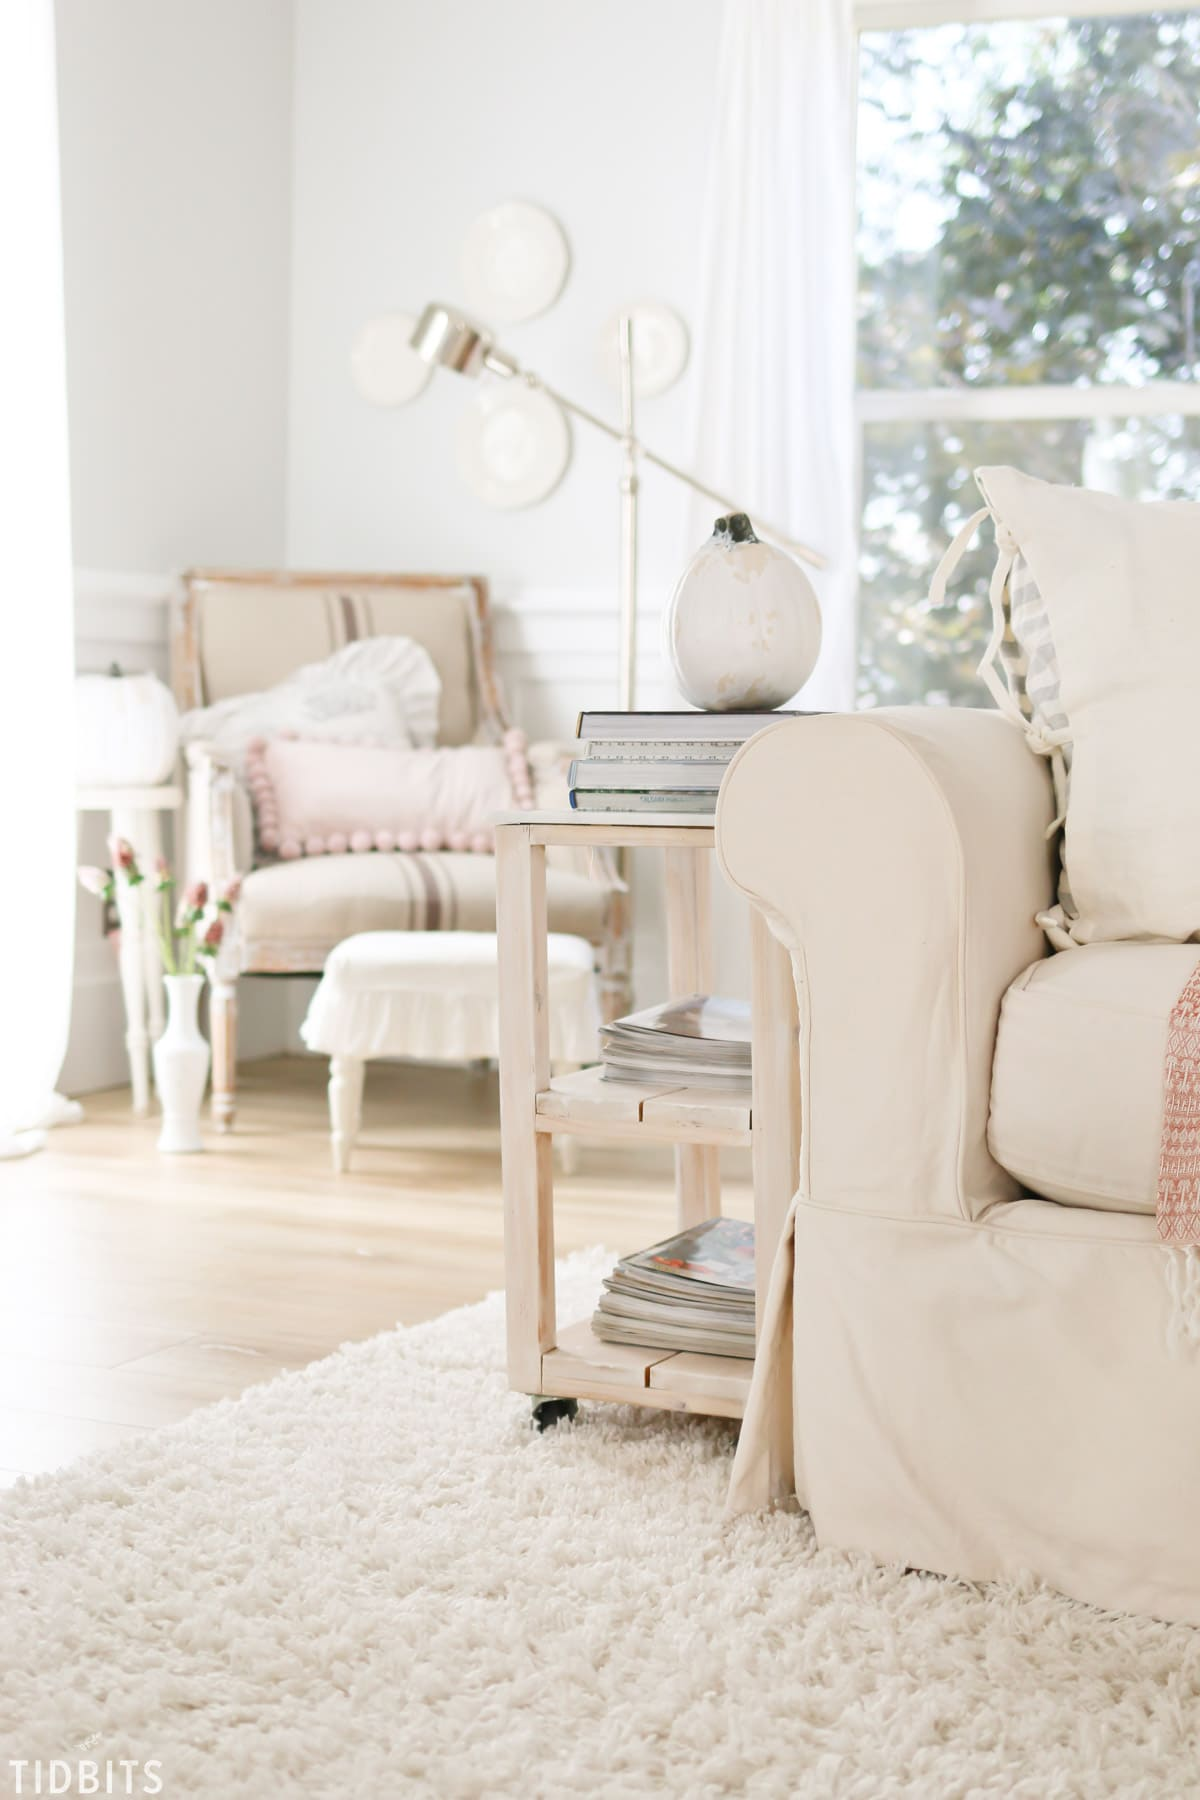 TIDBITS Fall Home Tour   Living Room. What small seasonal changes you can do when you don't feel like decorating.